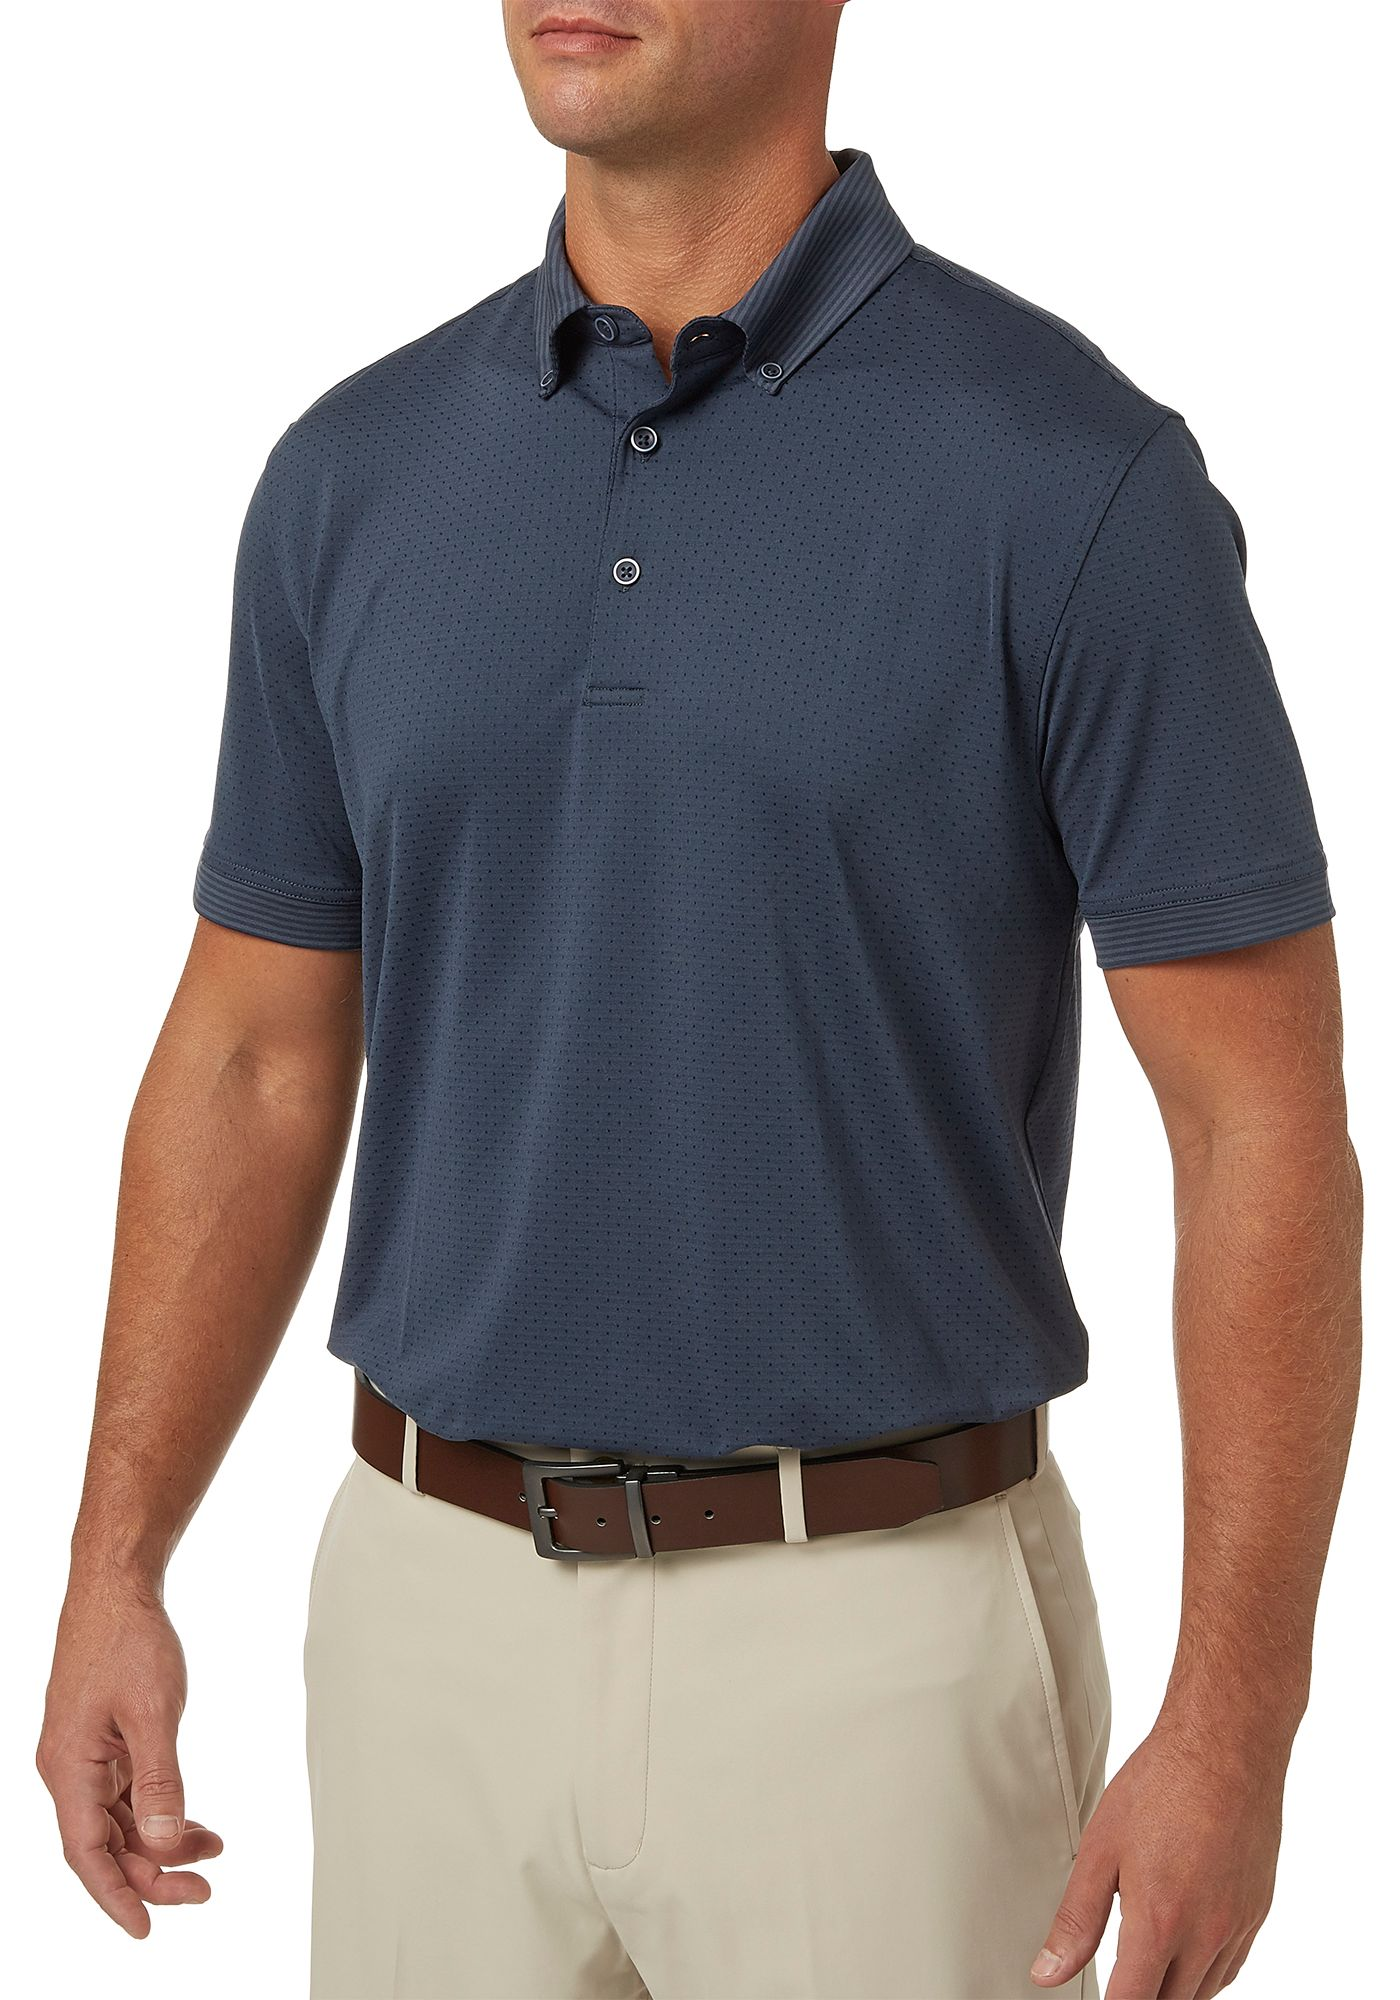 Walter Hagen Men's Polka Dot Stripe Lifestyle Golf Polo